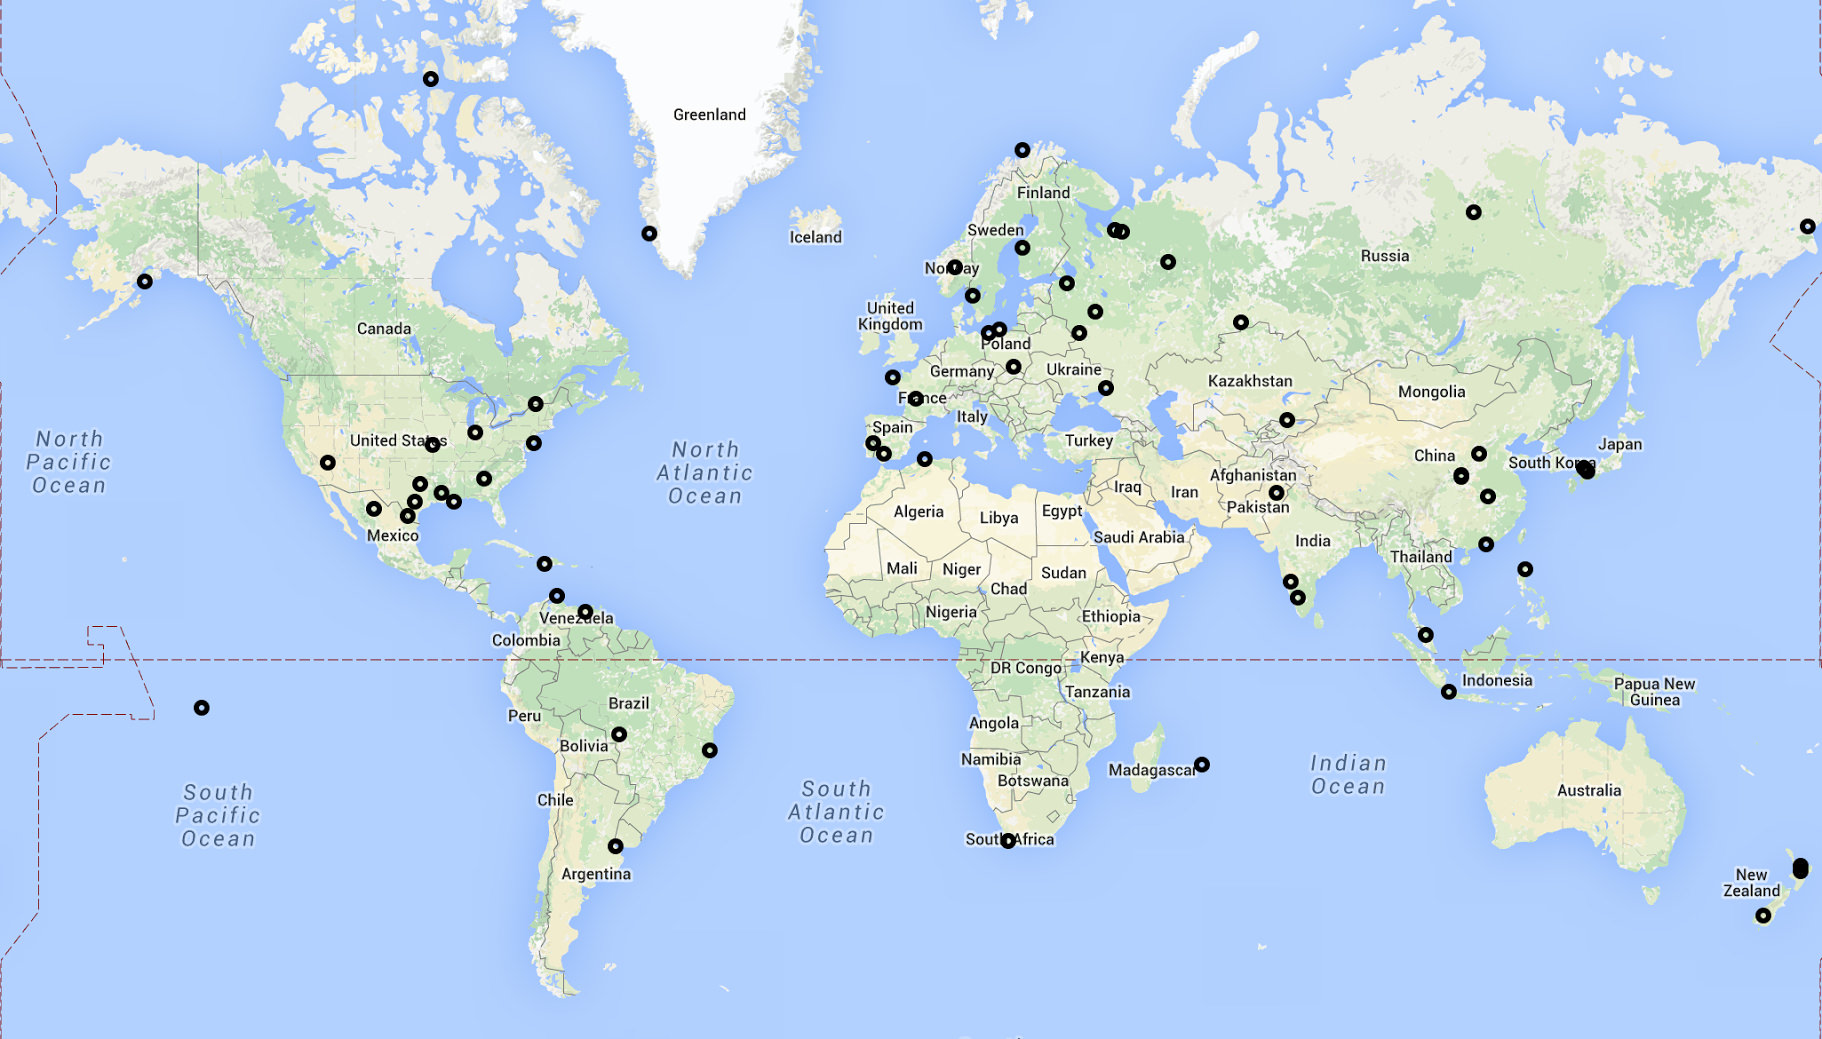 Our map of new receivers activated in the first two weeks of August.